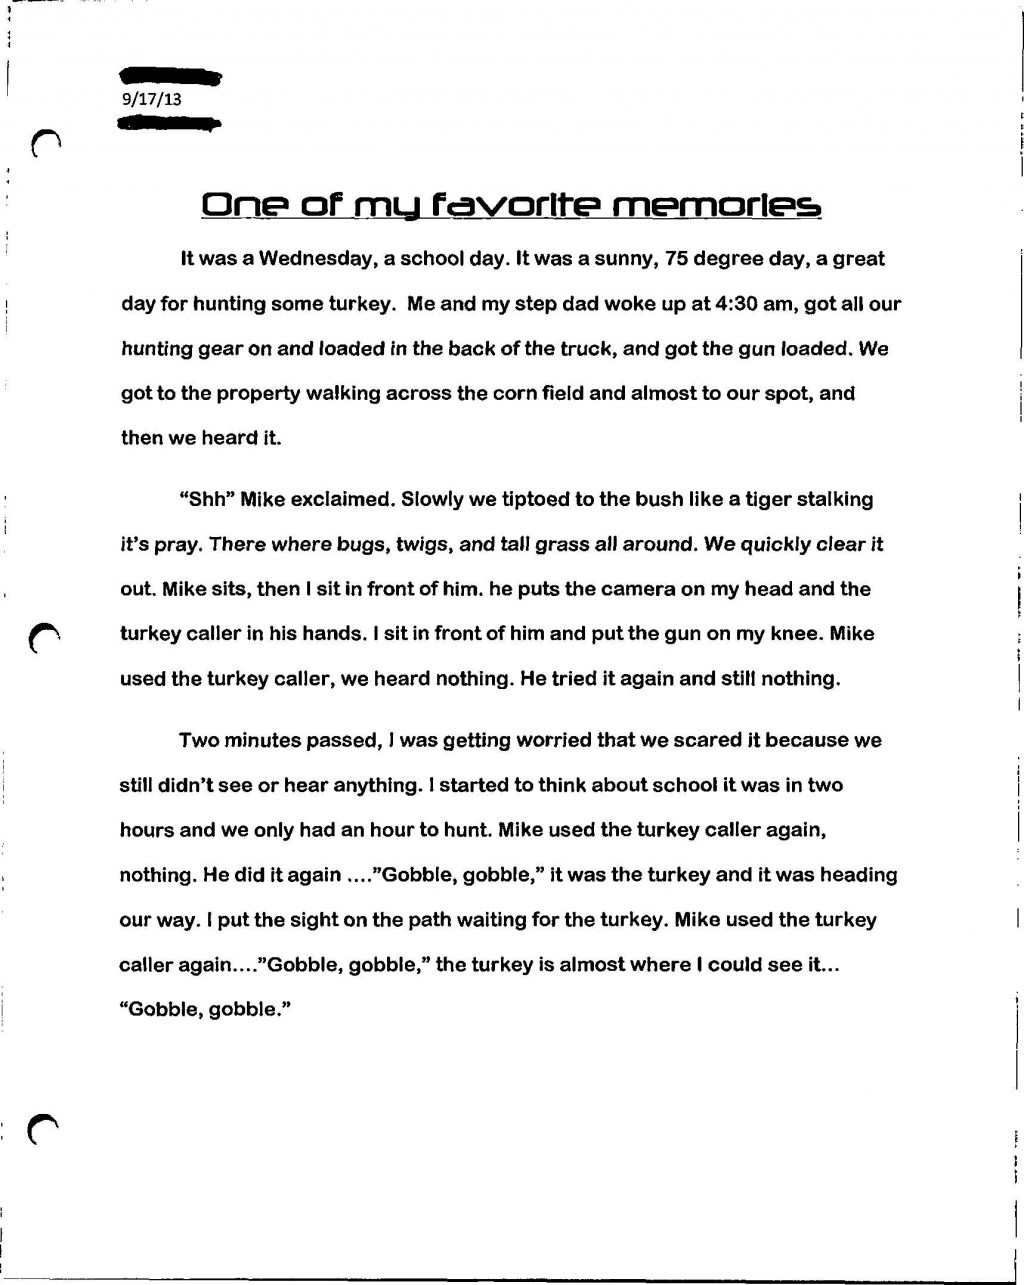 003 Essay Of Who Am I Example Paperexample2 Page 1 Awesome As A Person Filipino Writing Aim In Life Large